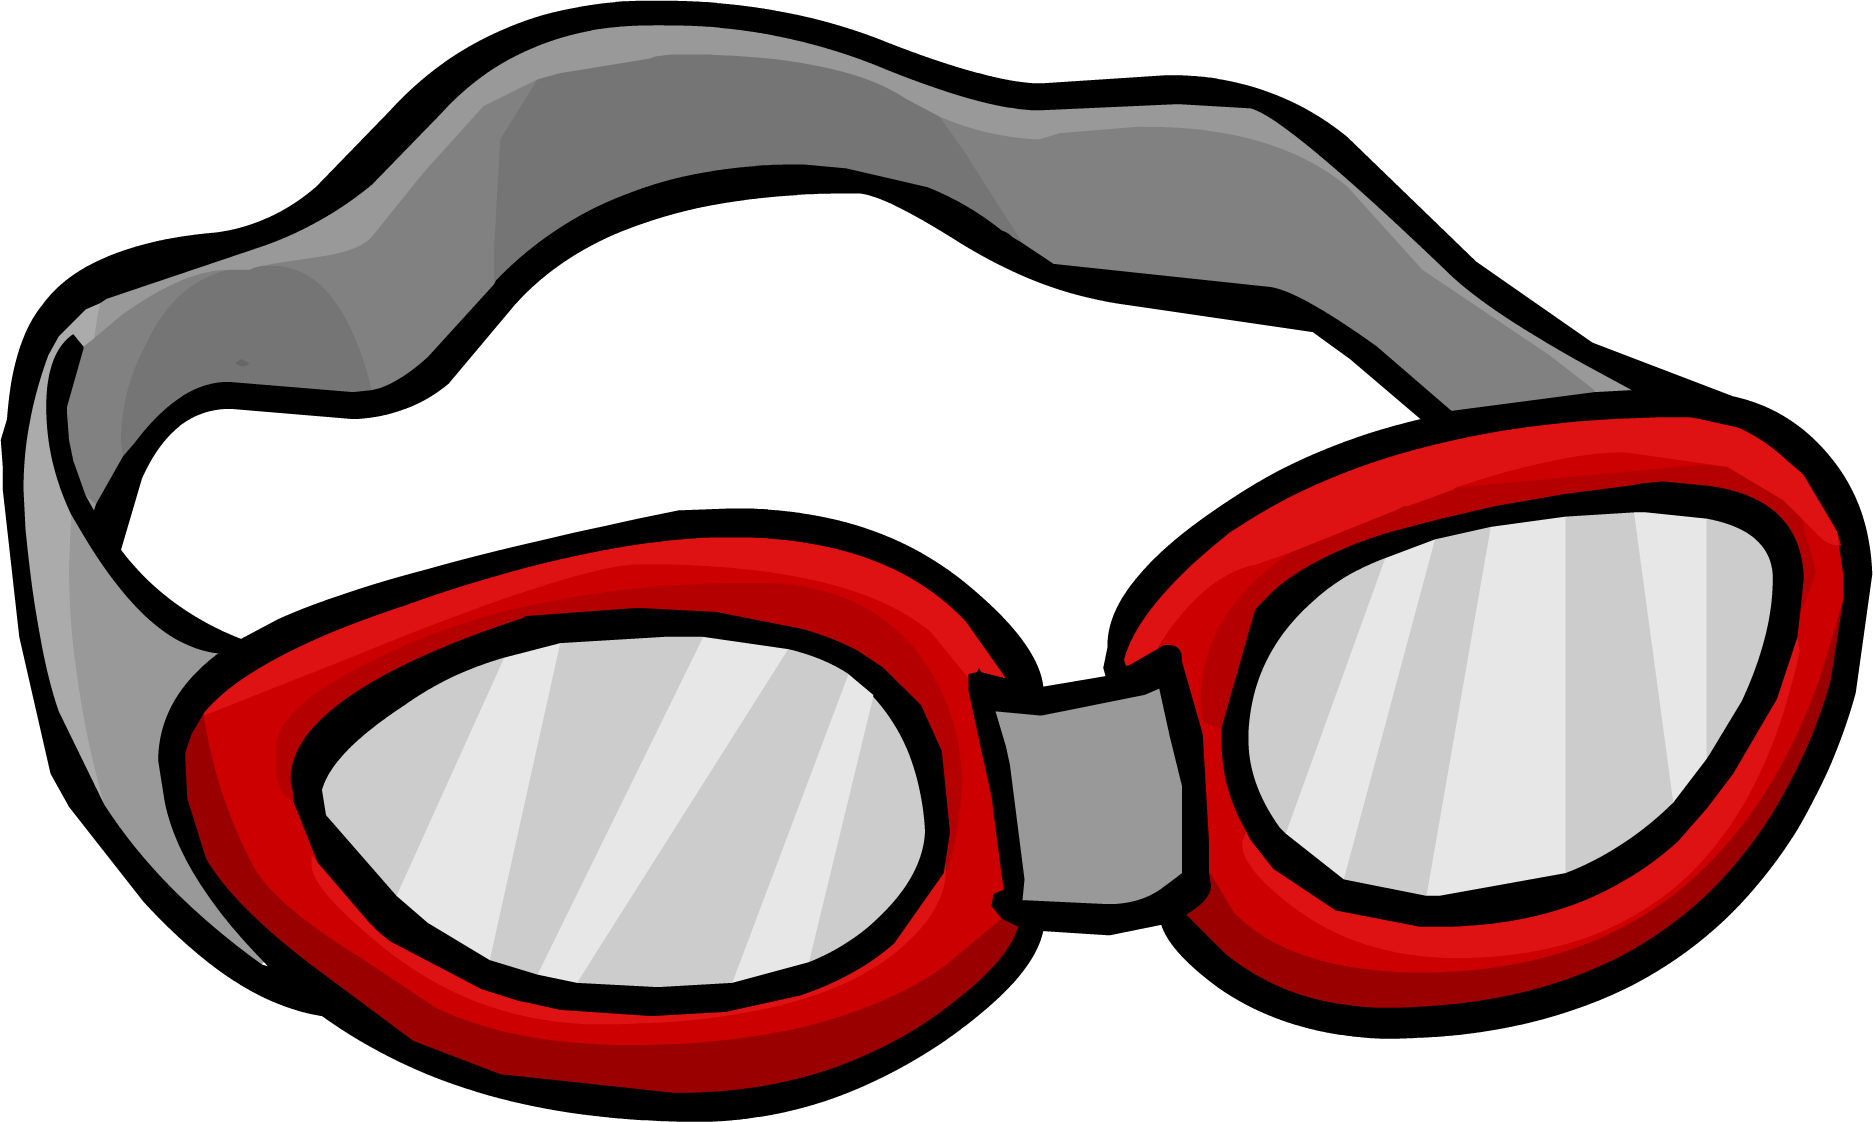 Goggles Clipart - Clipart Kid